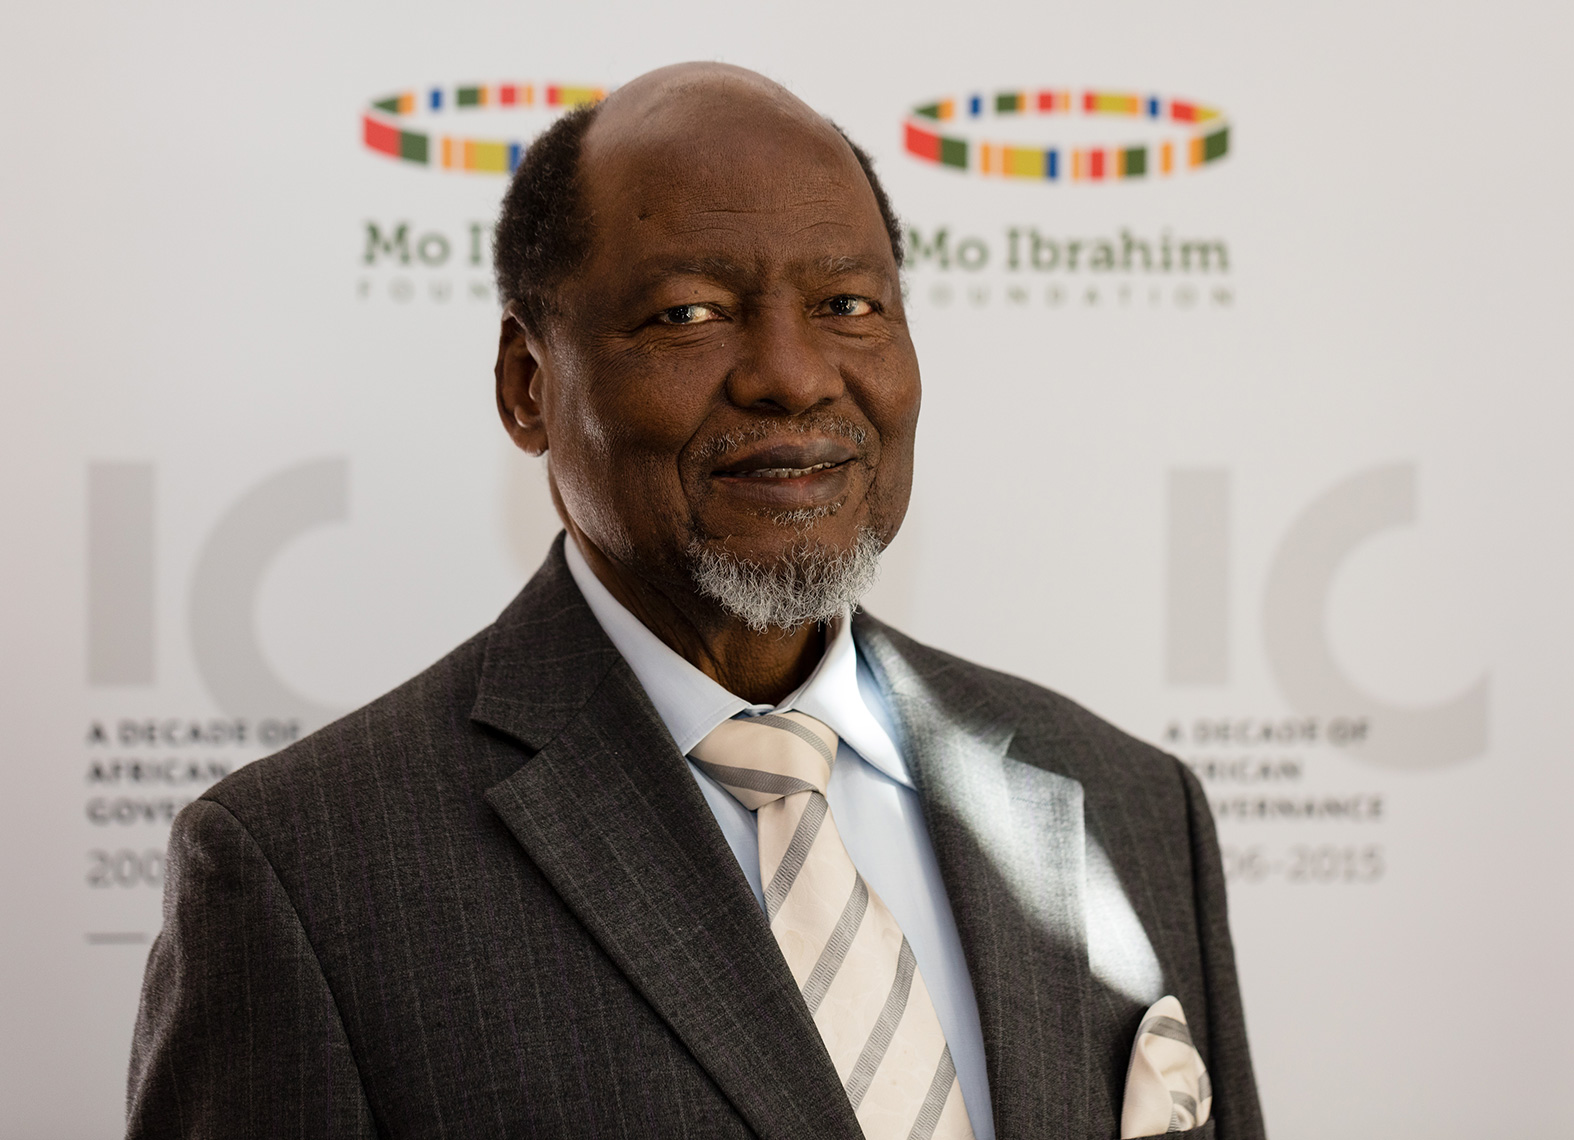 President Joaquim Chissano wearing grey suit and striped yellow tie